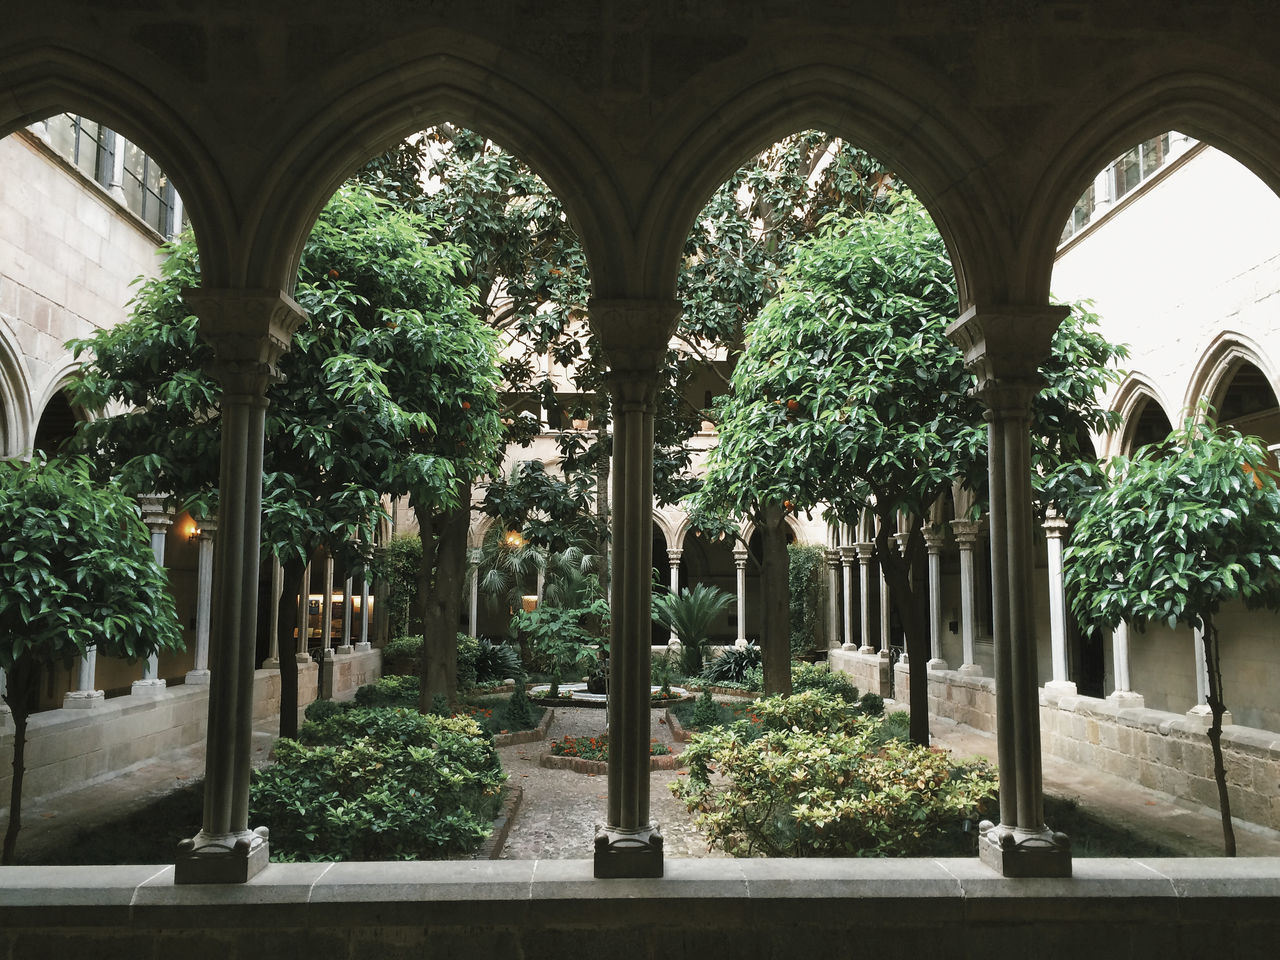 Arch Architectural Column Architecture Built Structure Calm Church Cloister Day Growth Mediterranean  Nature No People Outdoors Plant Spirituality Tree